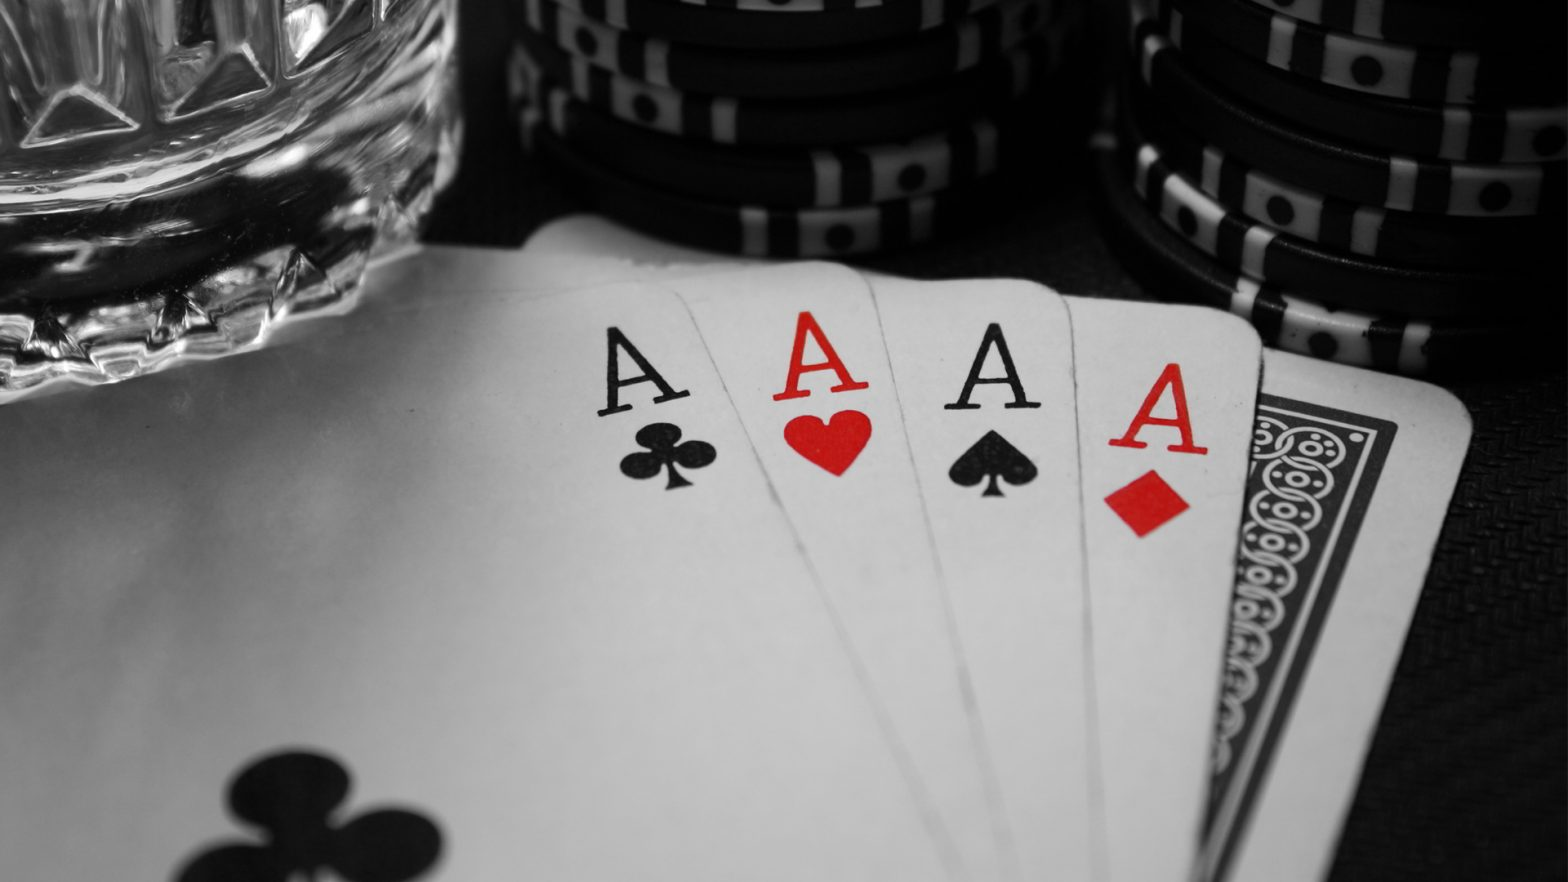 The Reality About Online Gambling In Six Little Phrases